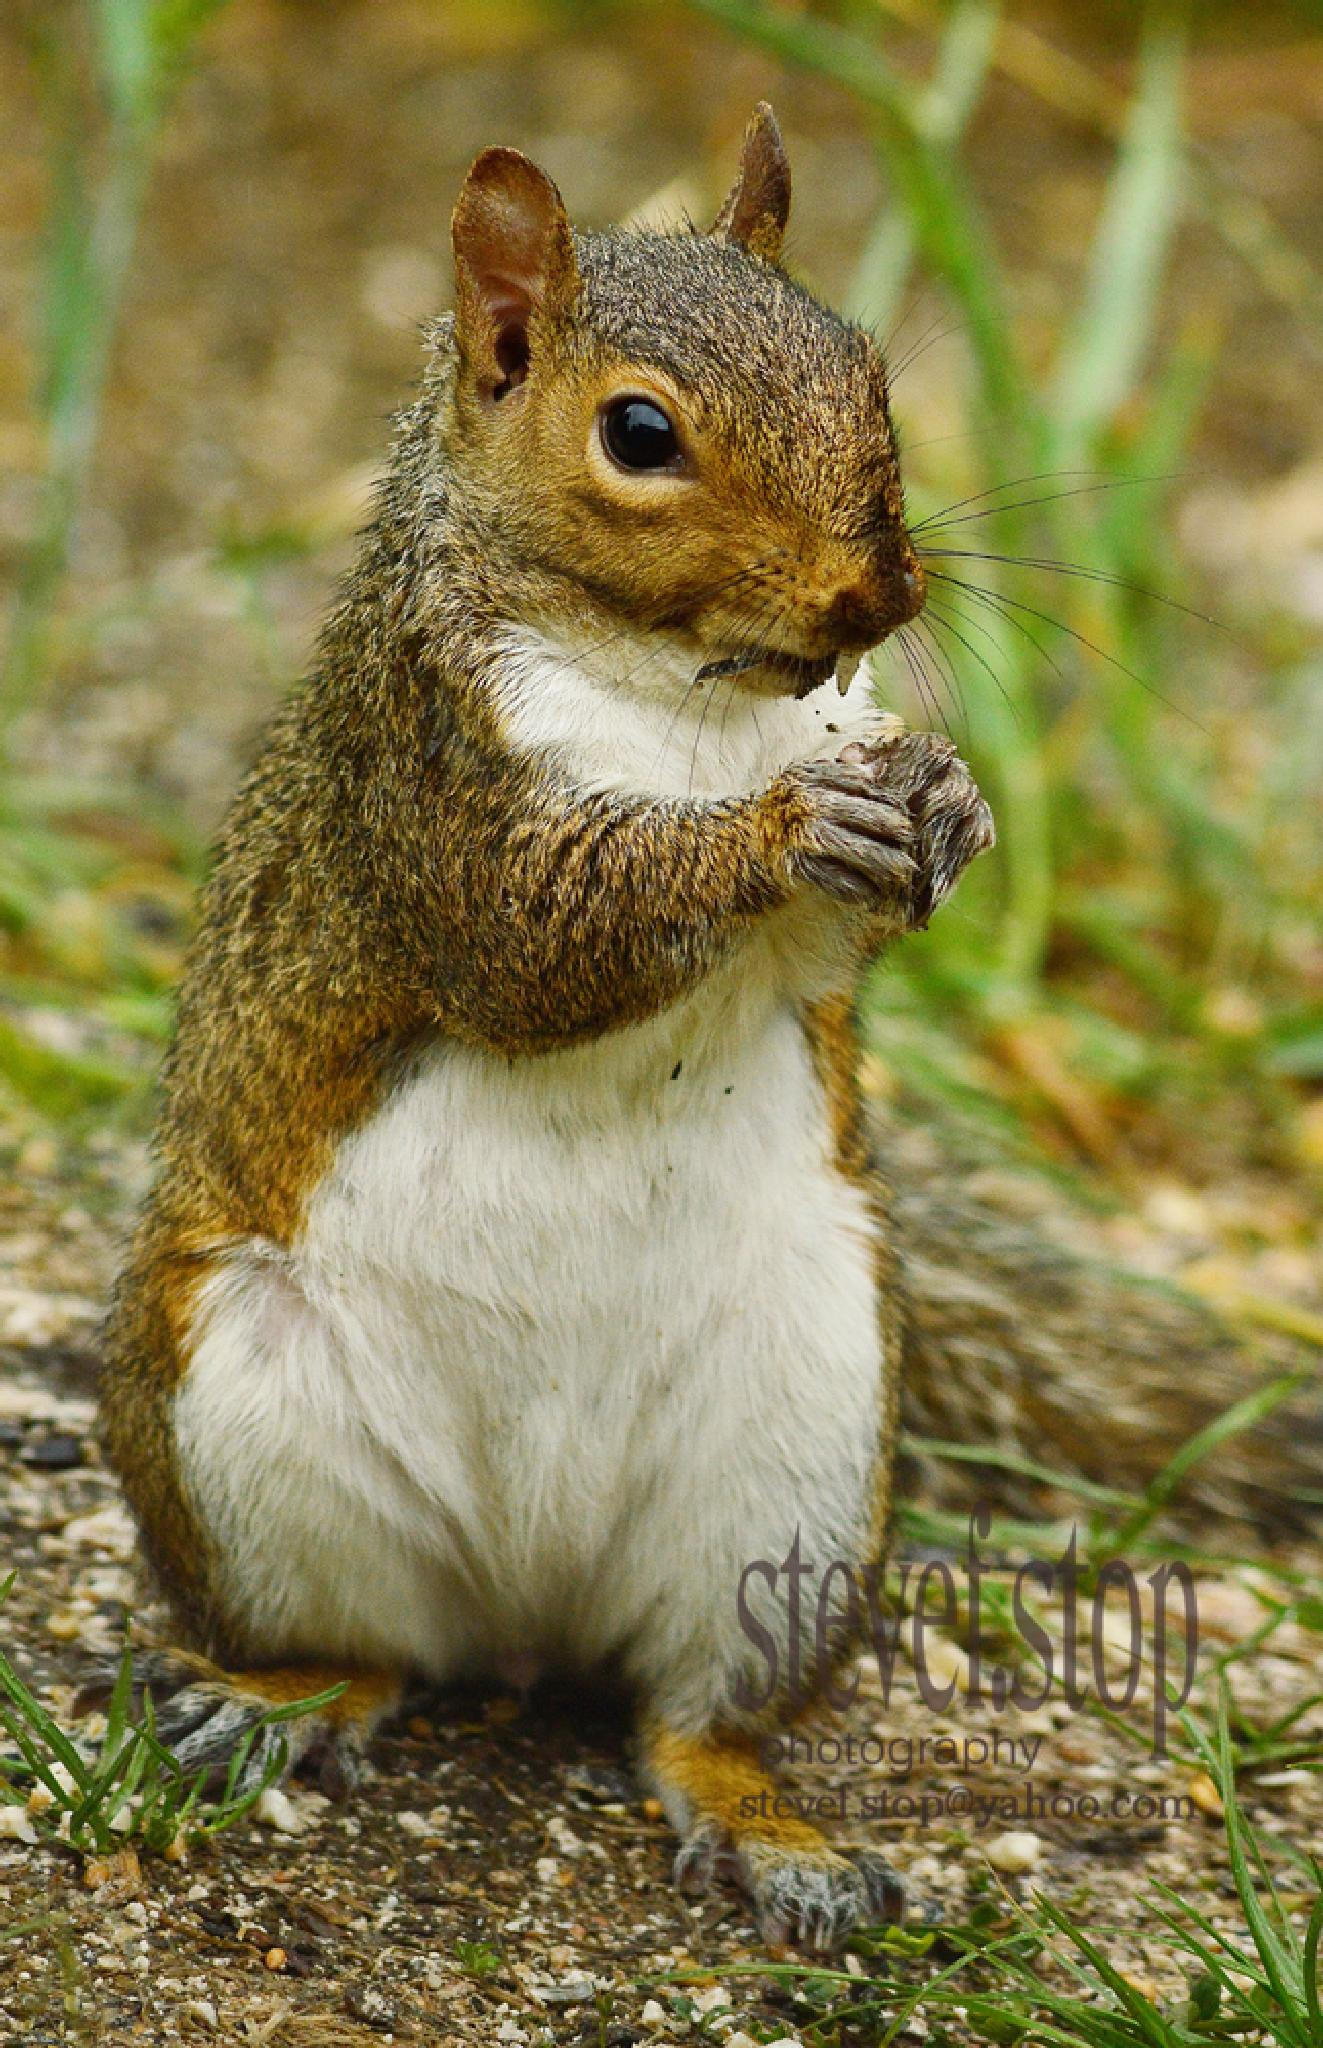 hungry grey squirrel by stevef.stop